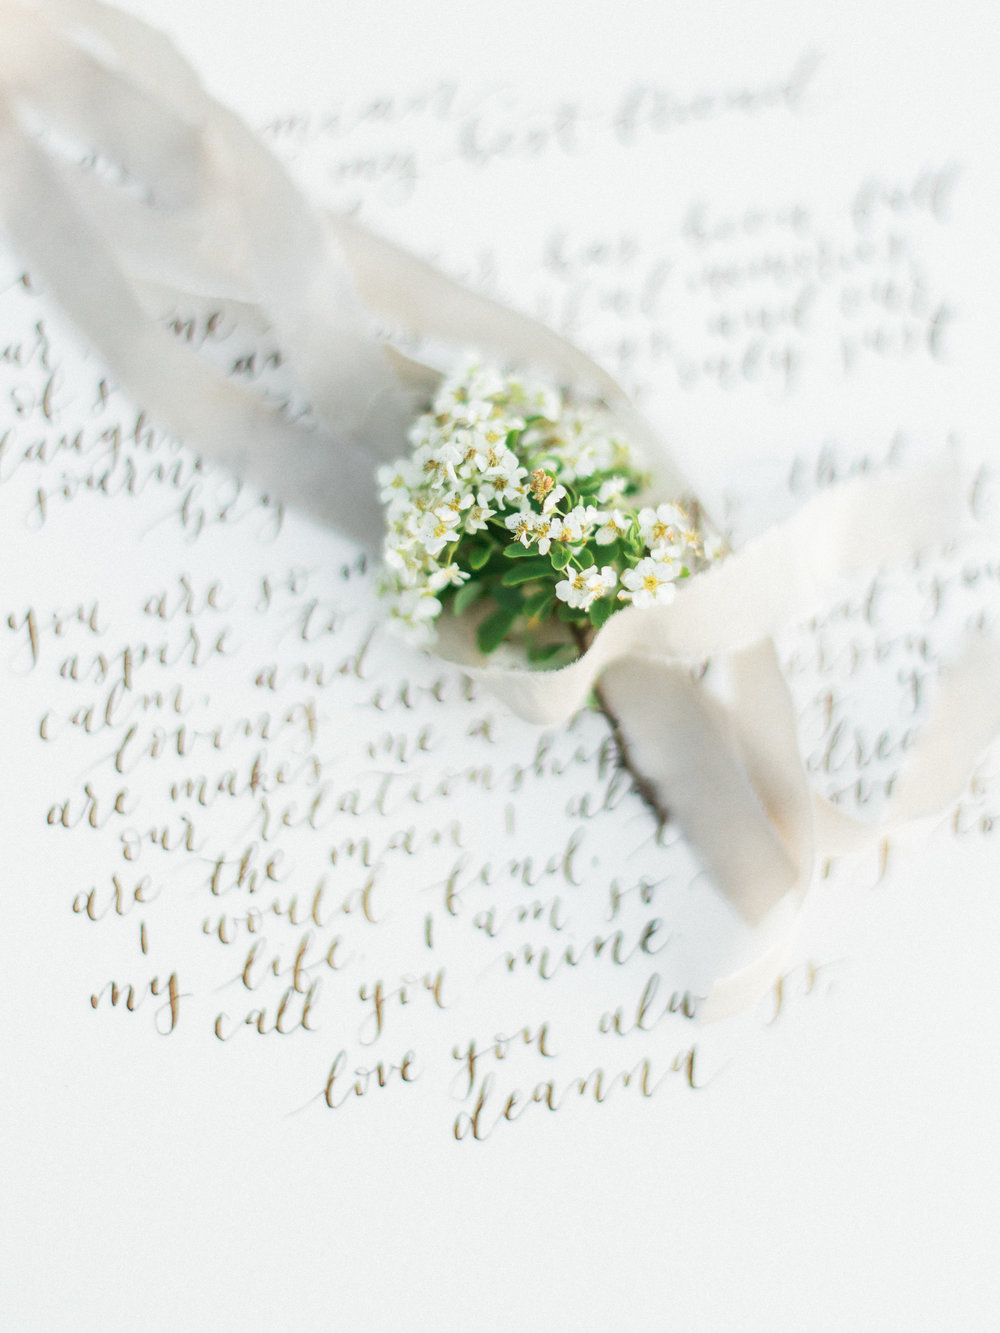 anniversary love notes | calligraphy vows by jennifer bianca calligraphy | shot by esther funk photography